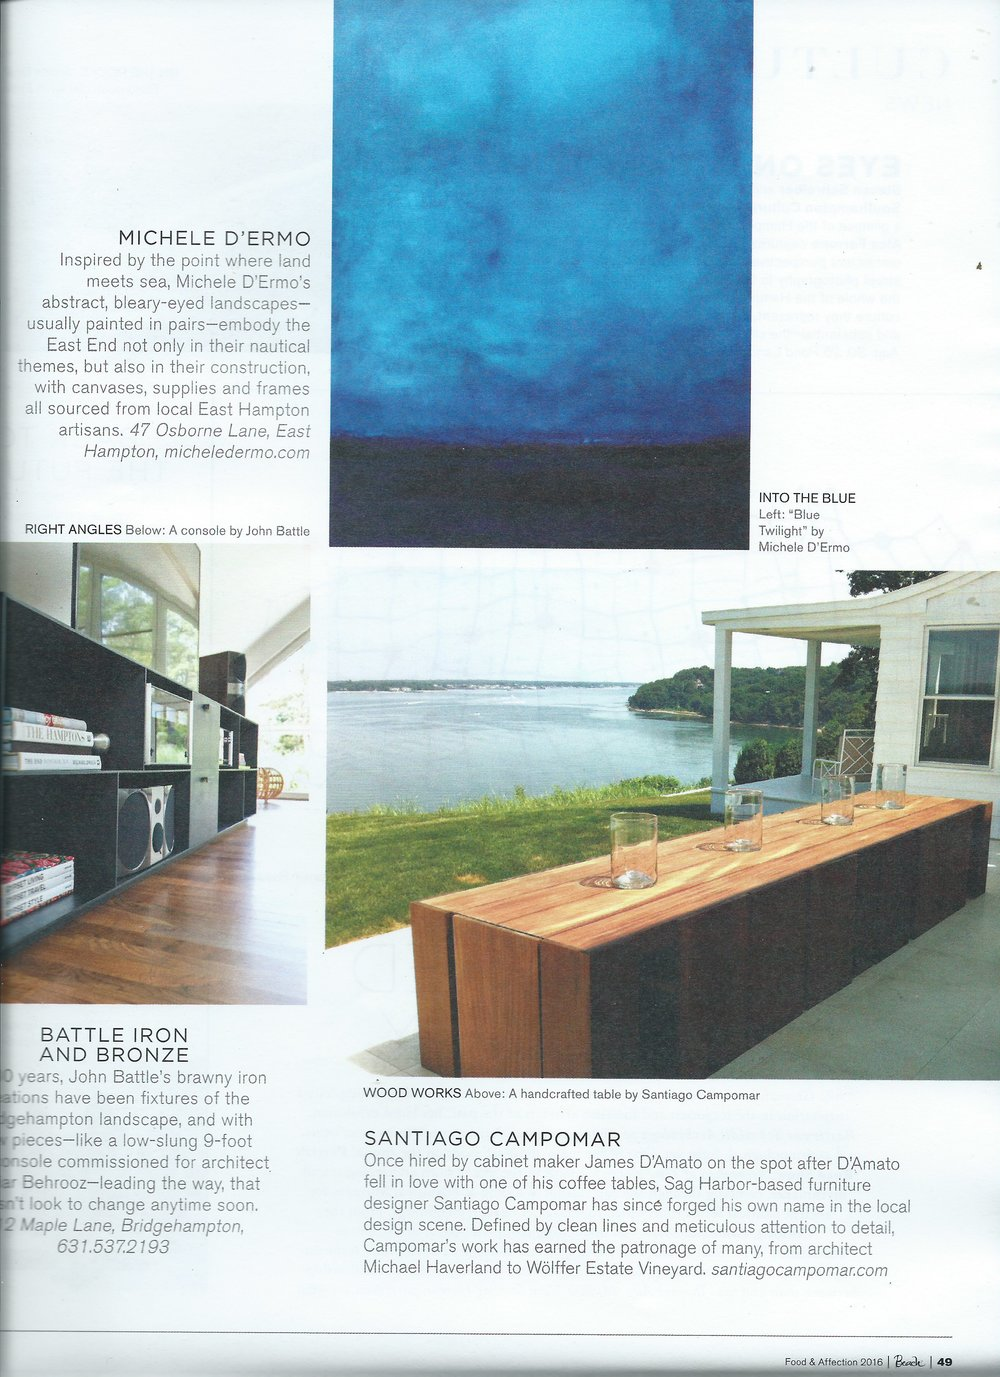 MD in Beach Magazine.jpeg